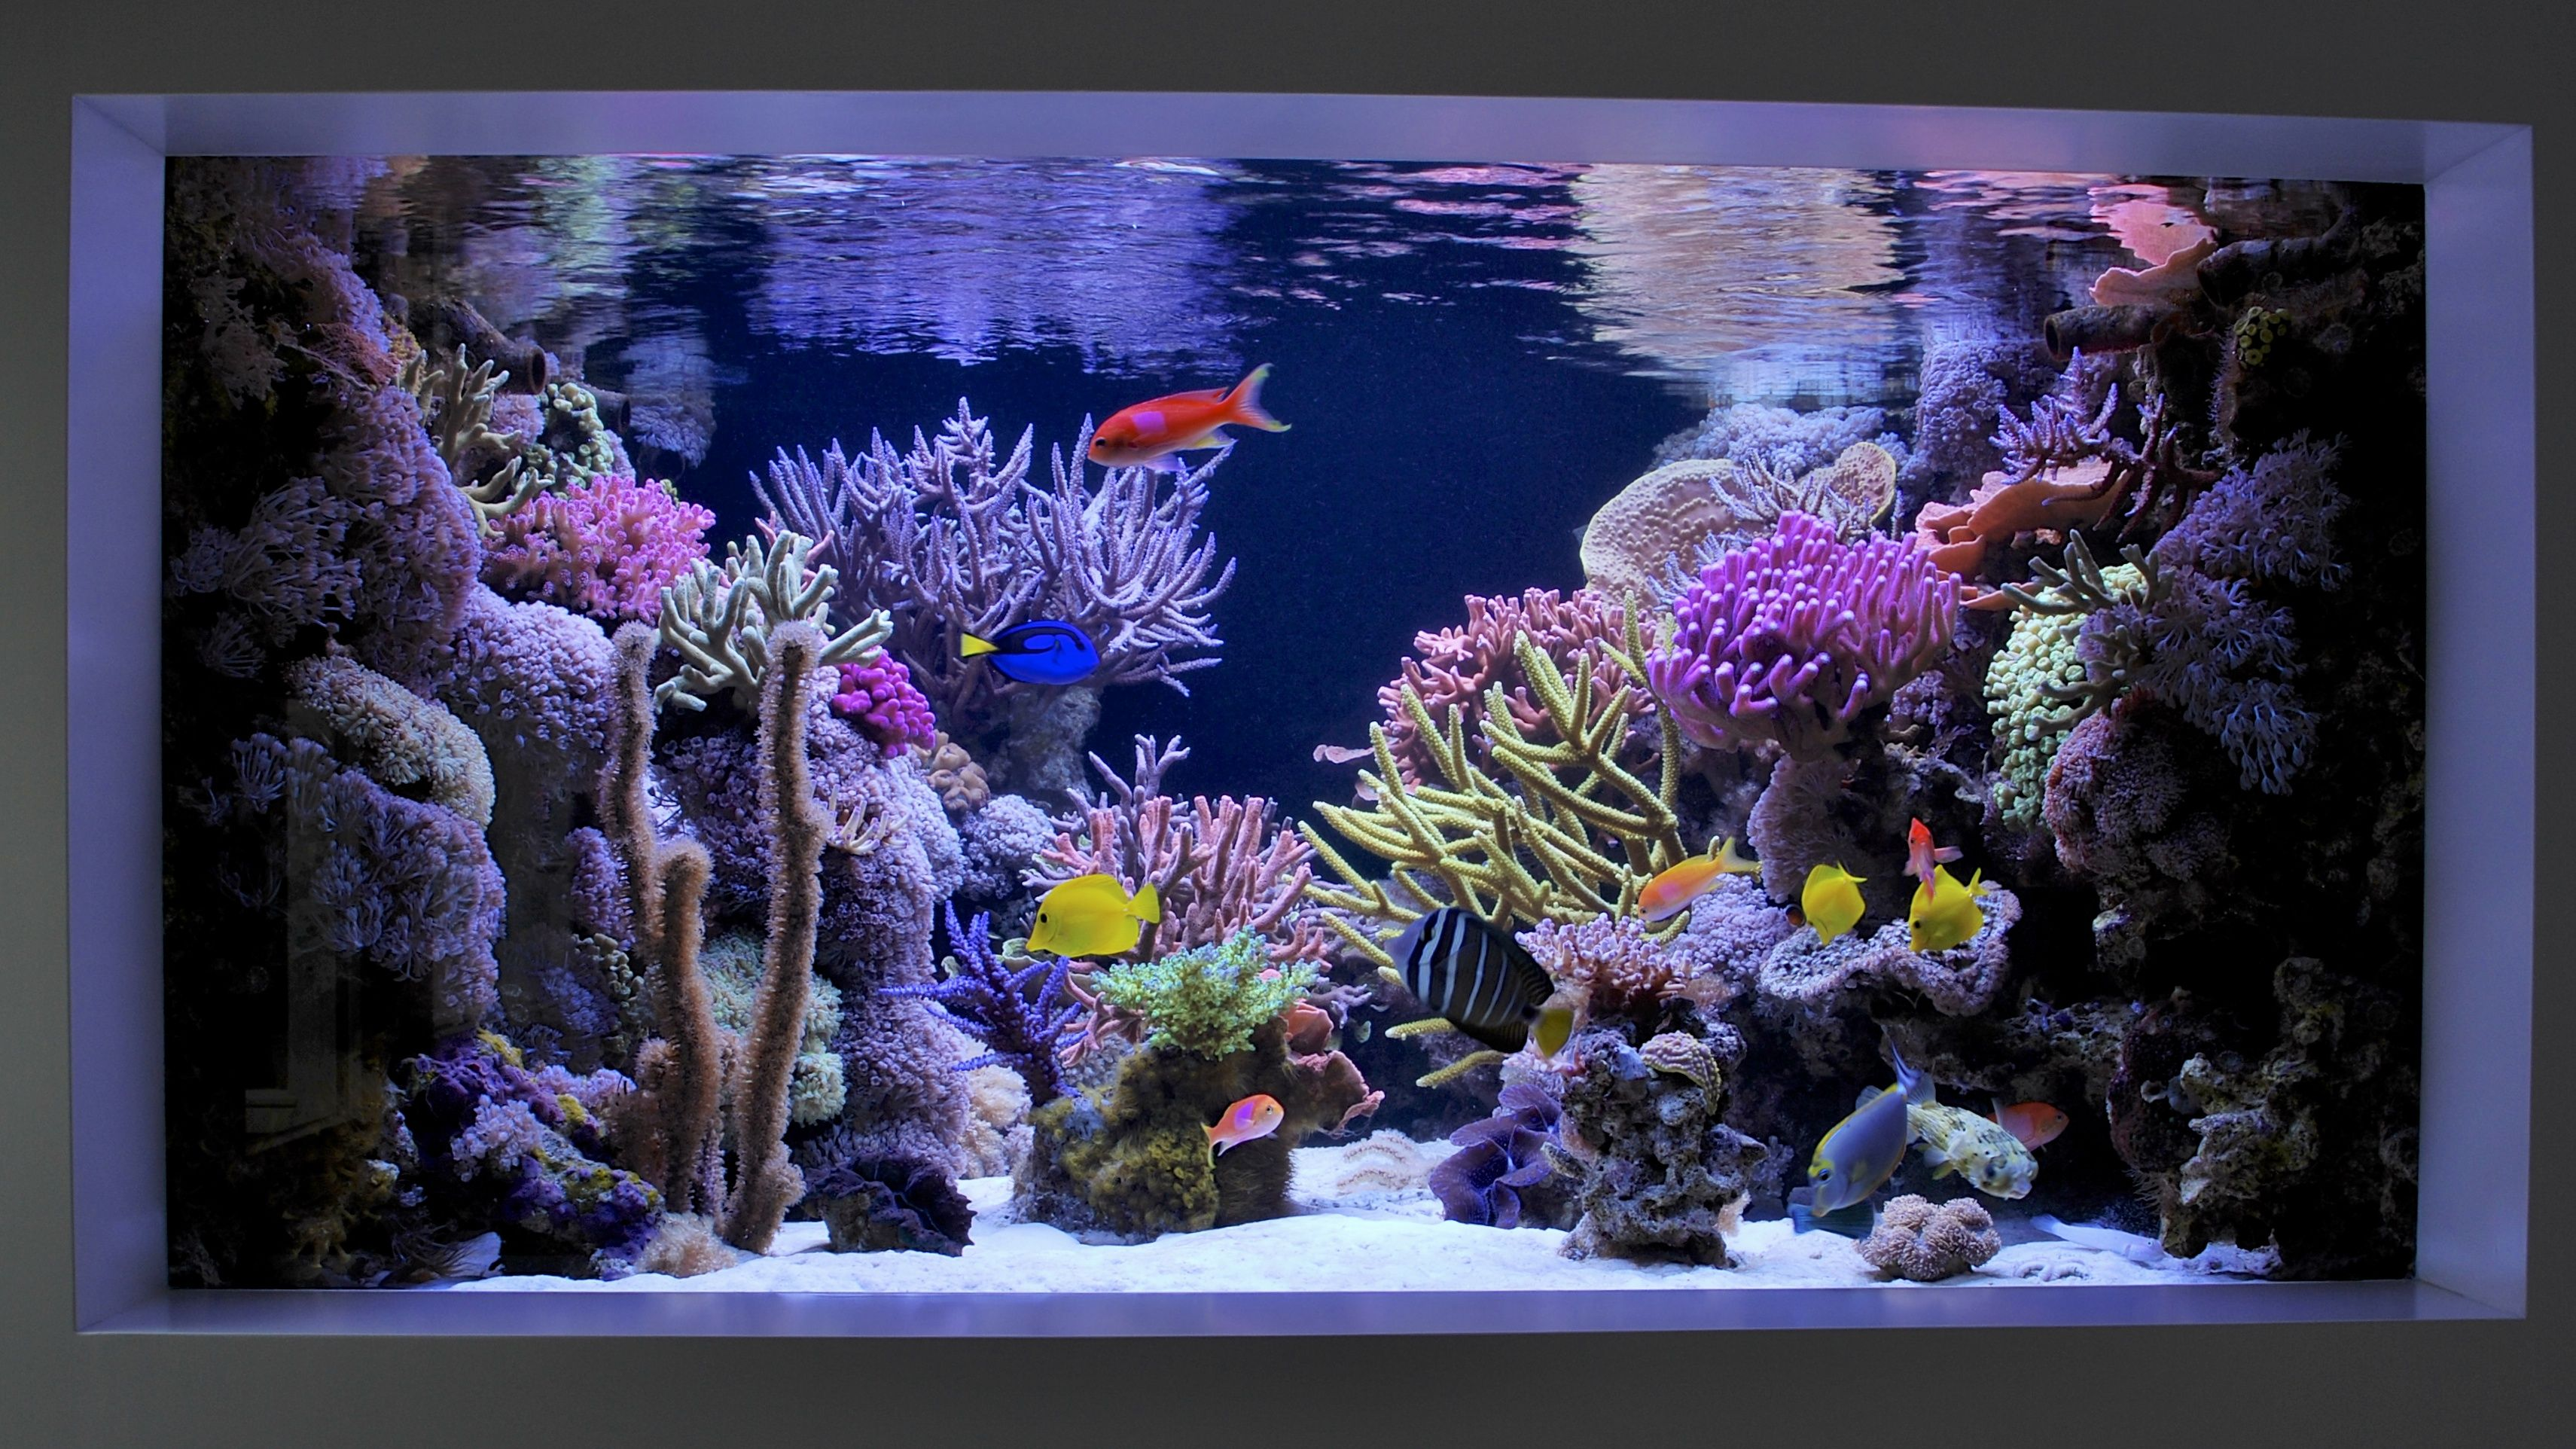 In wall 500 gallon reef tank    Custom reef tanks by Aqua Luxury   Pinterest   Aquariums, Marine